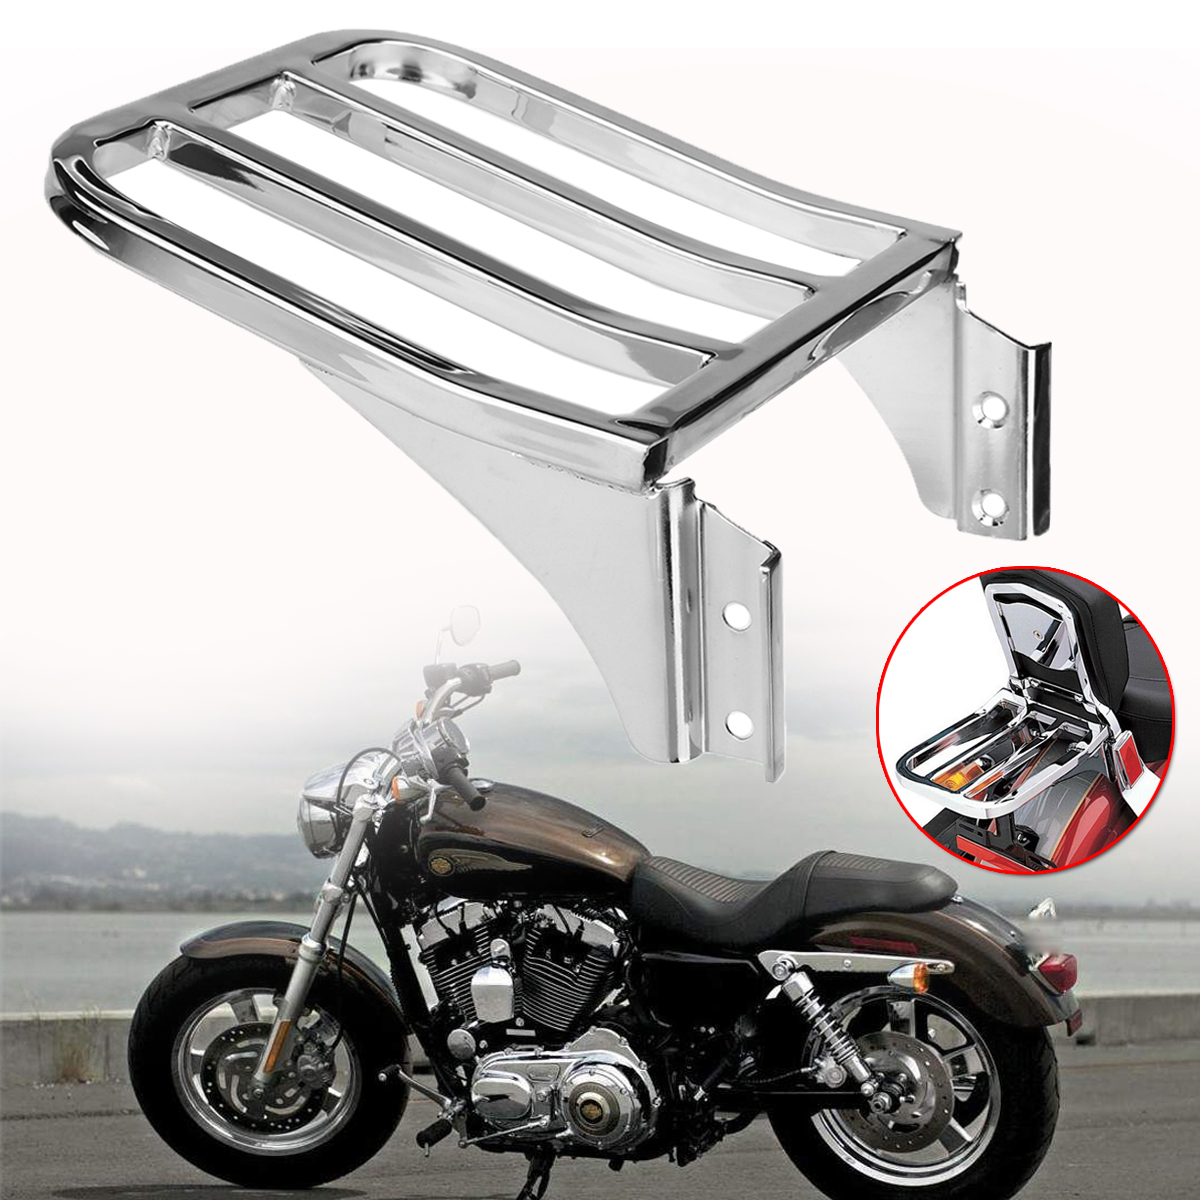 For Harley Sportster XL1200 883 72 48 Nightster Dyna Motorcycle Rear Luggage Rack Chrome Solo Seat Luggage Support Shelf Rack motorcycle bike parts custom rear luggage rack mount pole with american usa chrome flag for harley